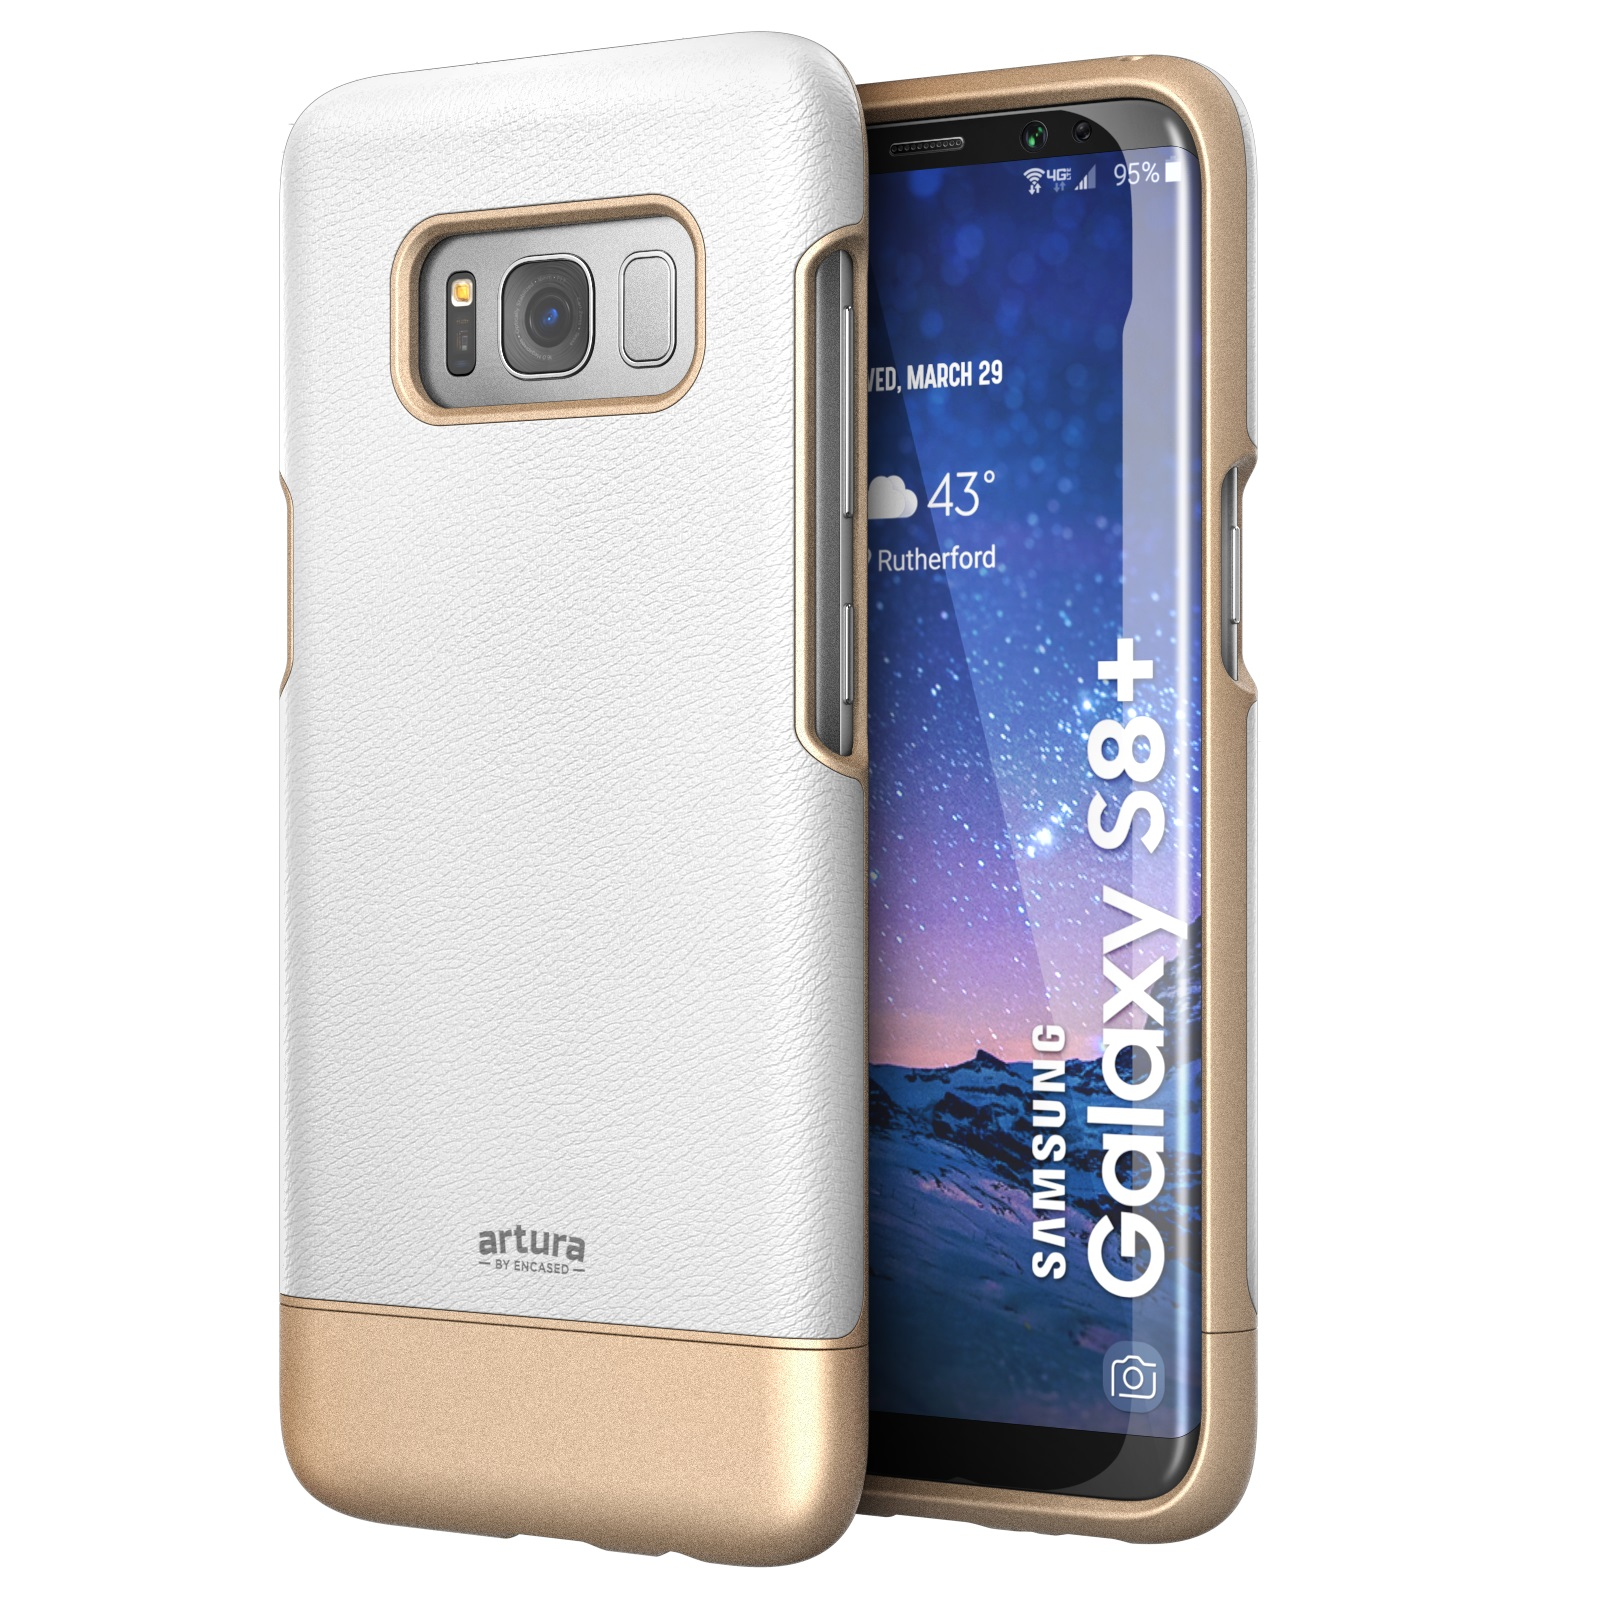 Galaxy S8 Premium Vegan Leather Case - Artura Collection By Encased